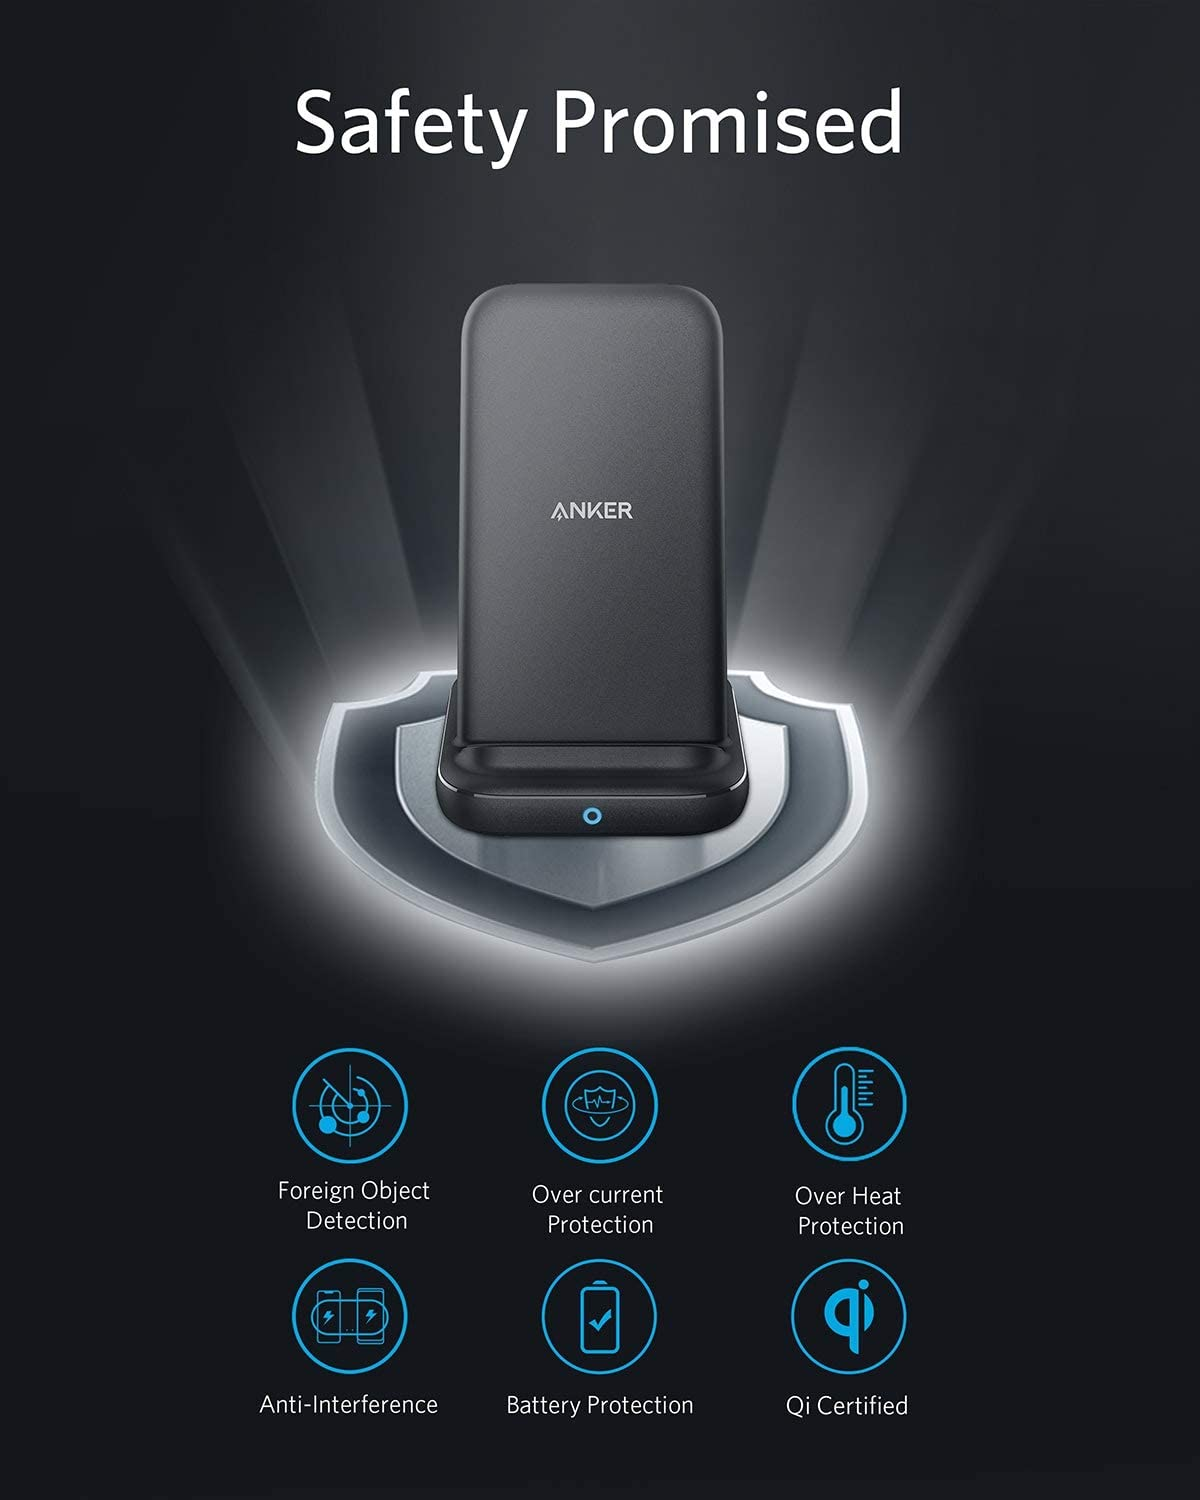 Anker PowerWave 10 Stand with 2 USB-A Ports Note 10 Note 9 Qi-Certified Fast Wireless Charger Stand Samsung Galaxy S10 S9 S8 Compatible with iPhone Xs Max XR XS X 8//8 Plus DC Adapter Included